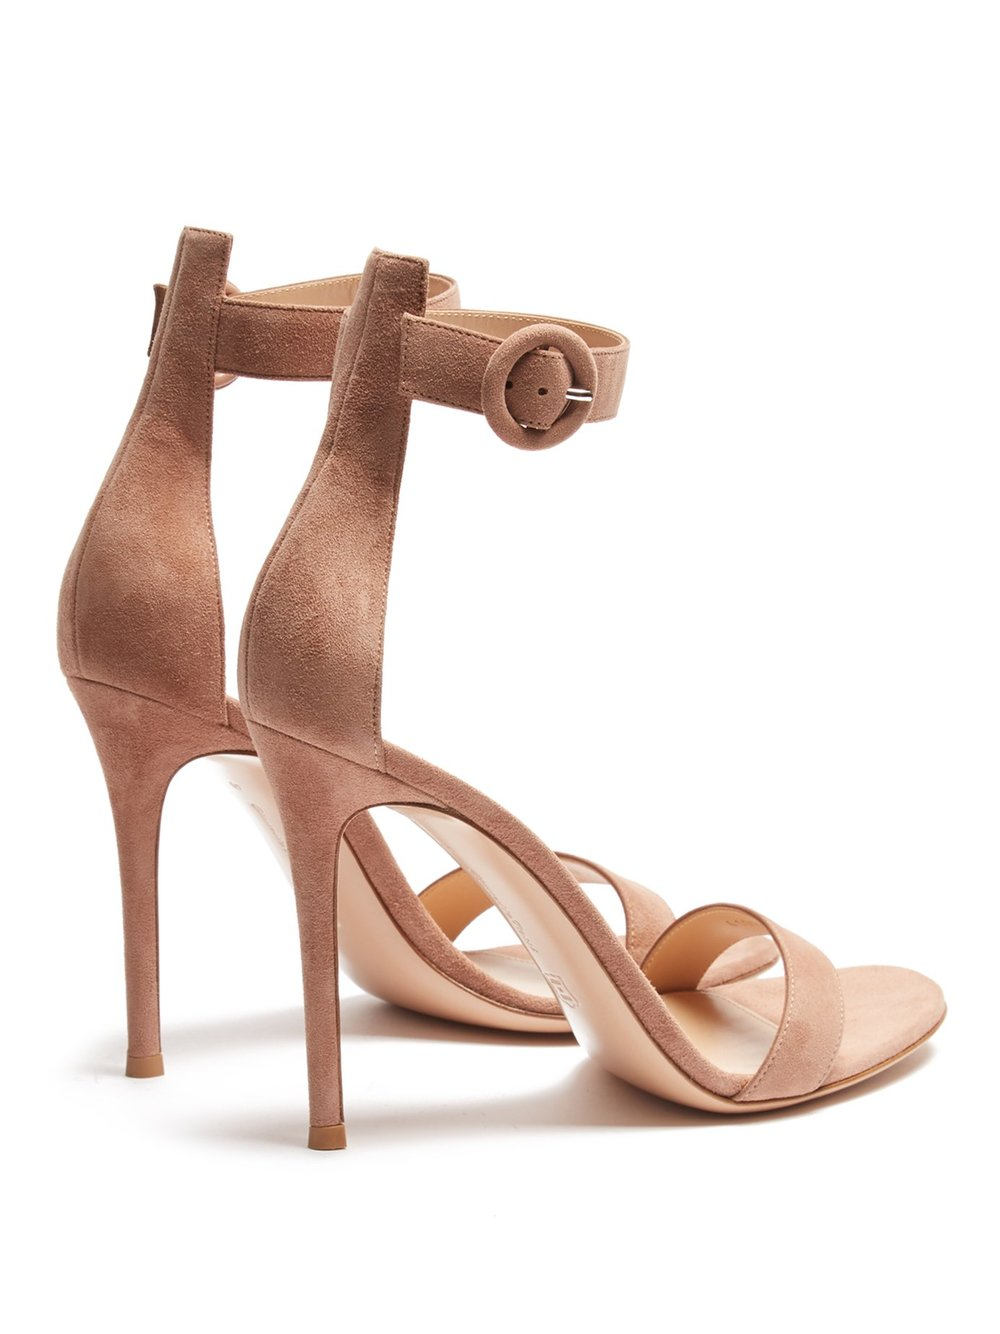 f3021f16acde Strappy Sandals